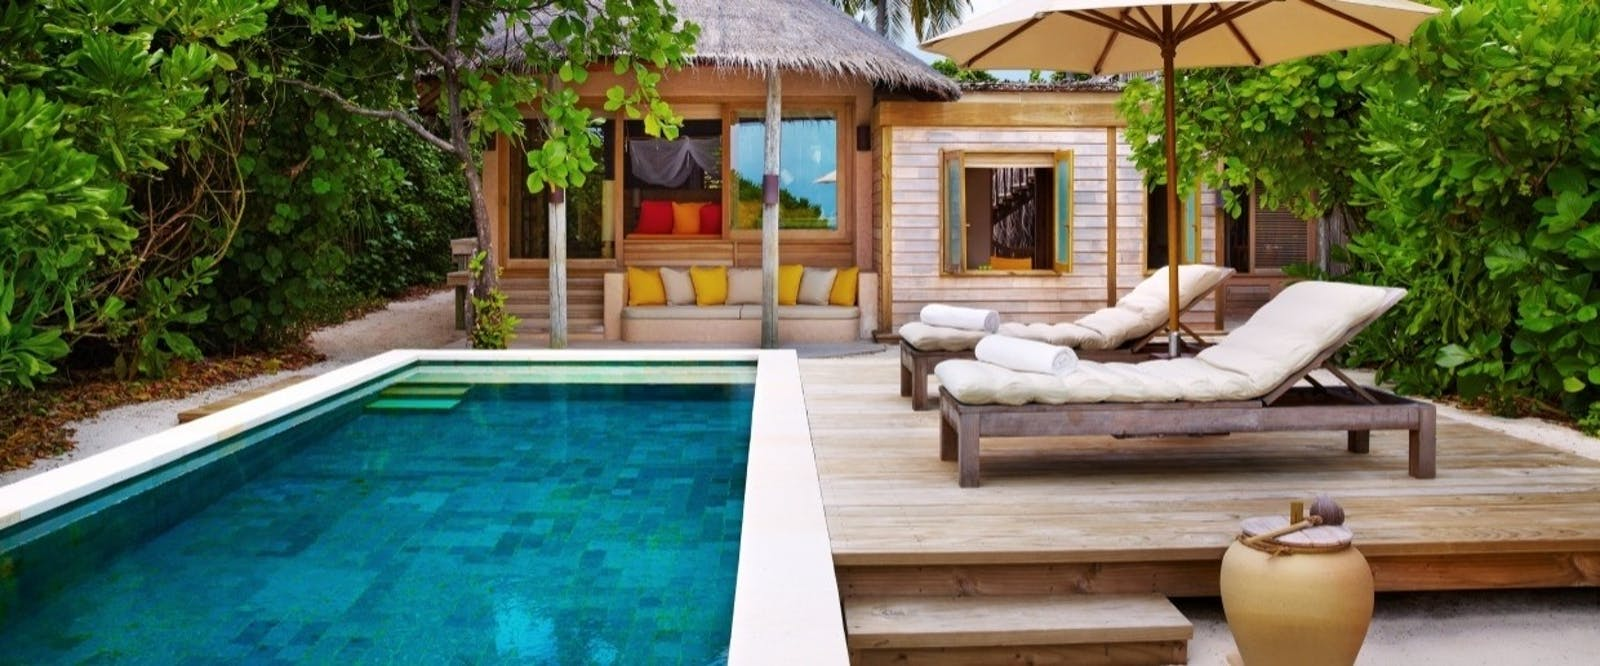 Family Villa with Pool Exterior at Six Senses Laamu, Maldives, Indian Ocean